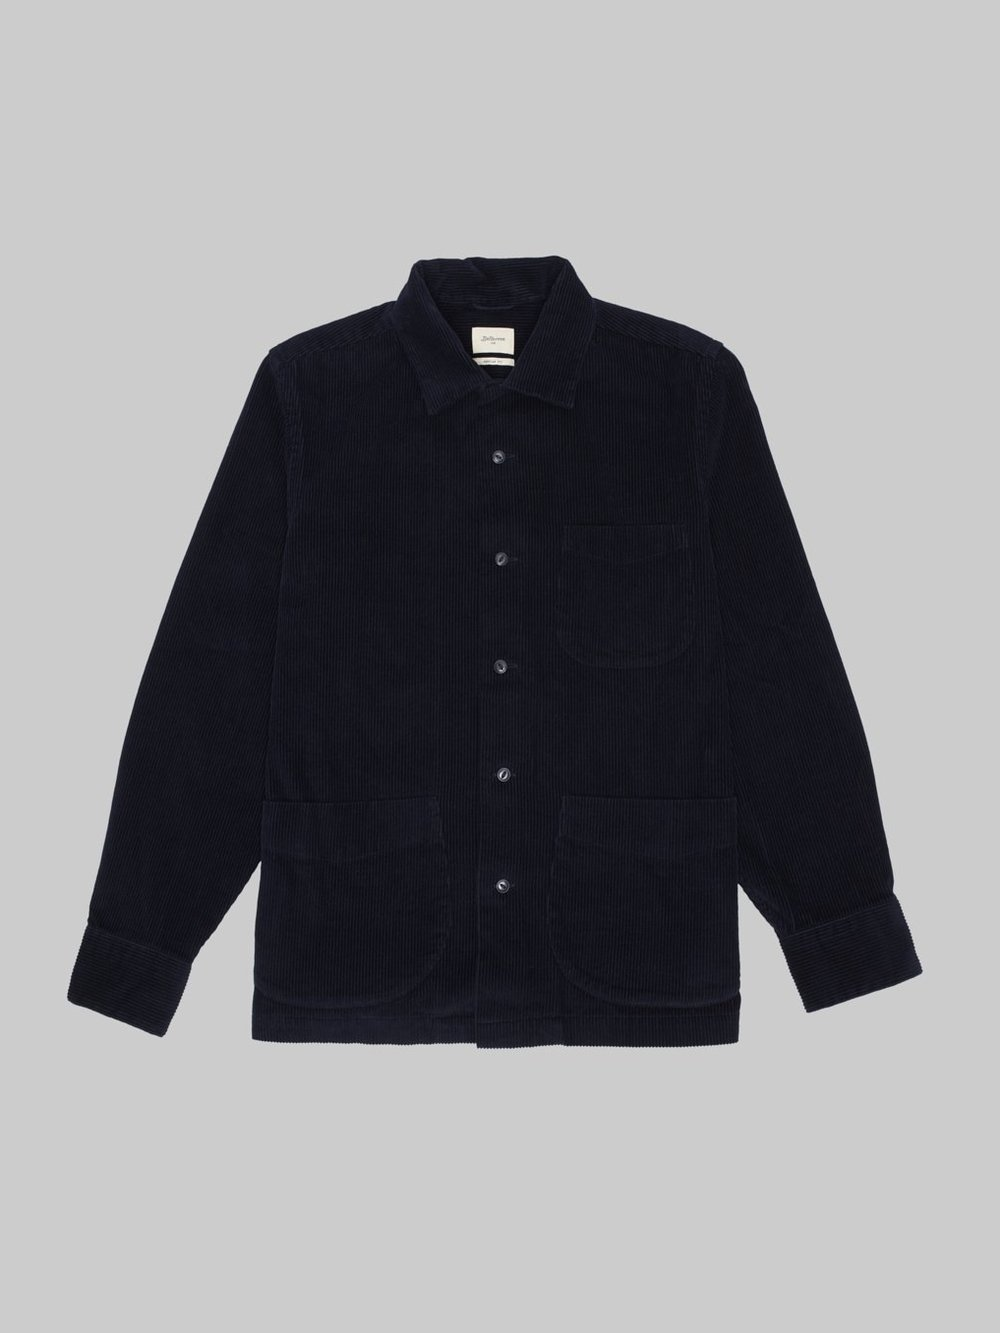 Golsh overshirt